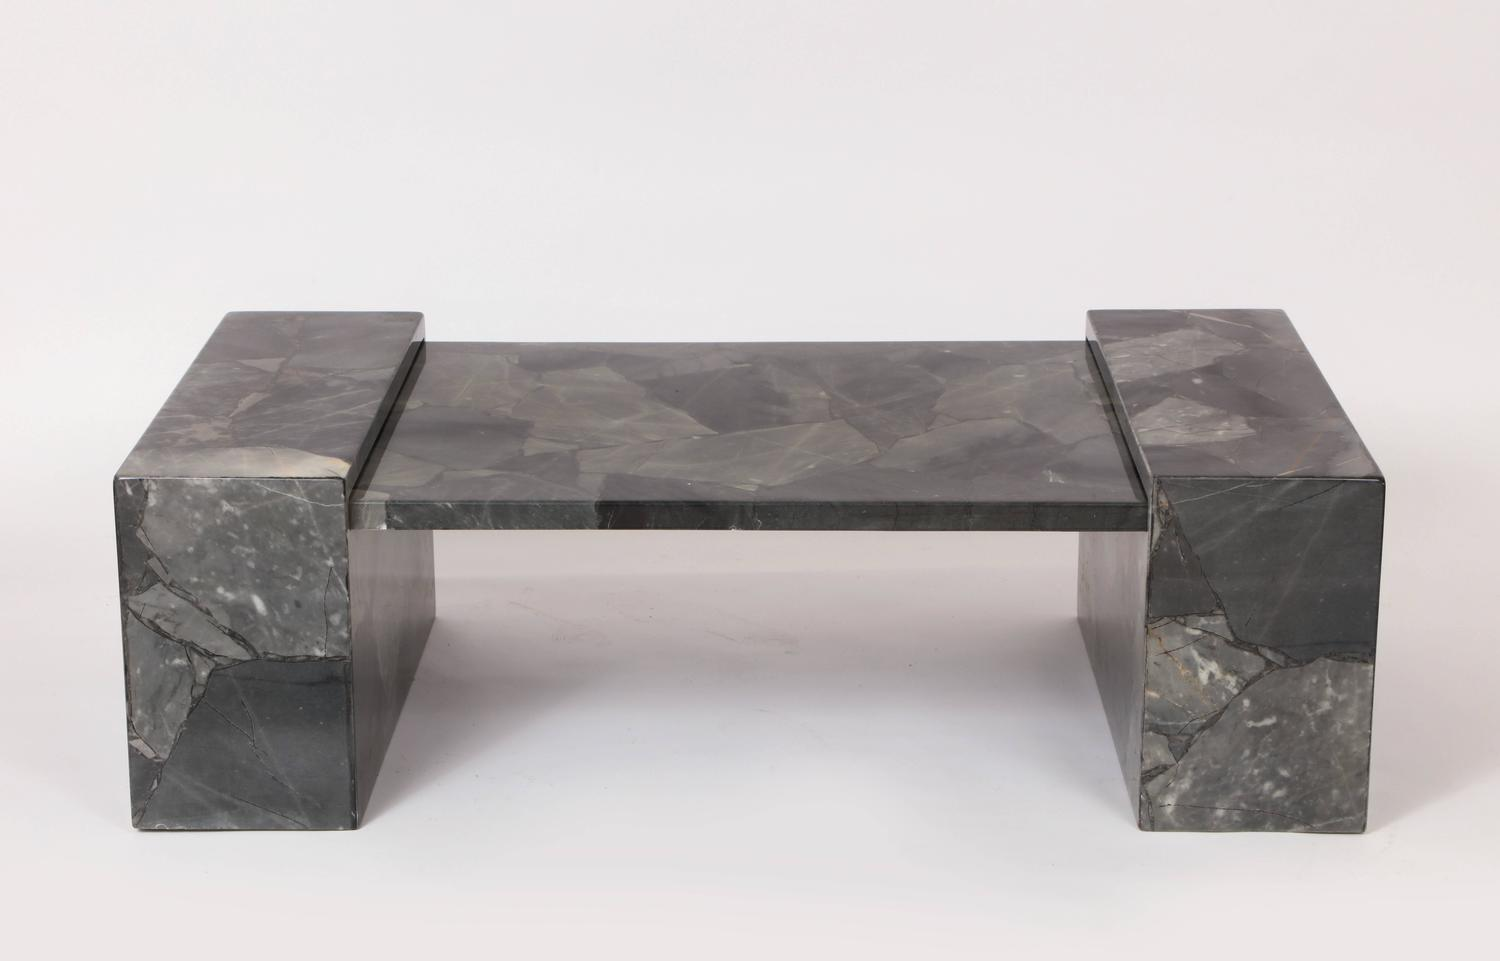 Muller Faux Marble Stone Coffee Table Hand Painted Lacquer Grey Mexico 1970 For Sale At 1stdibs